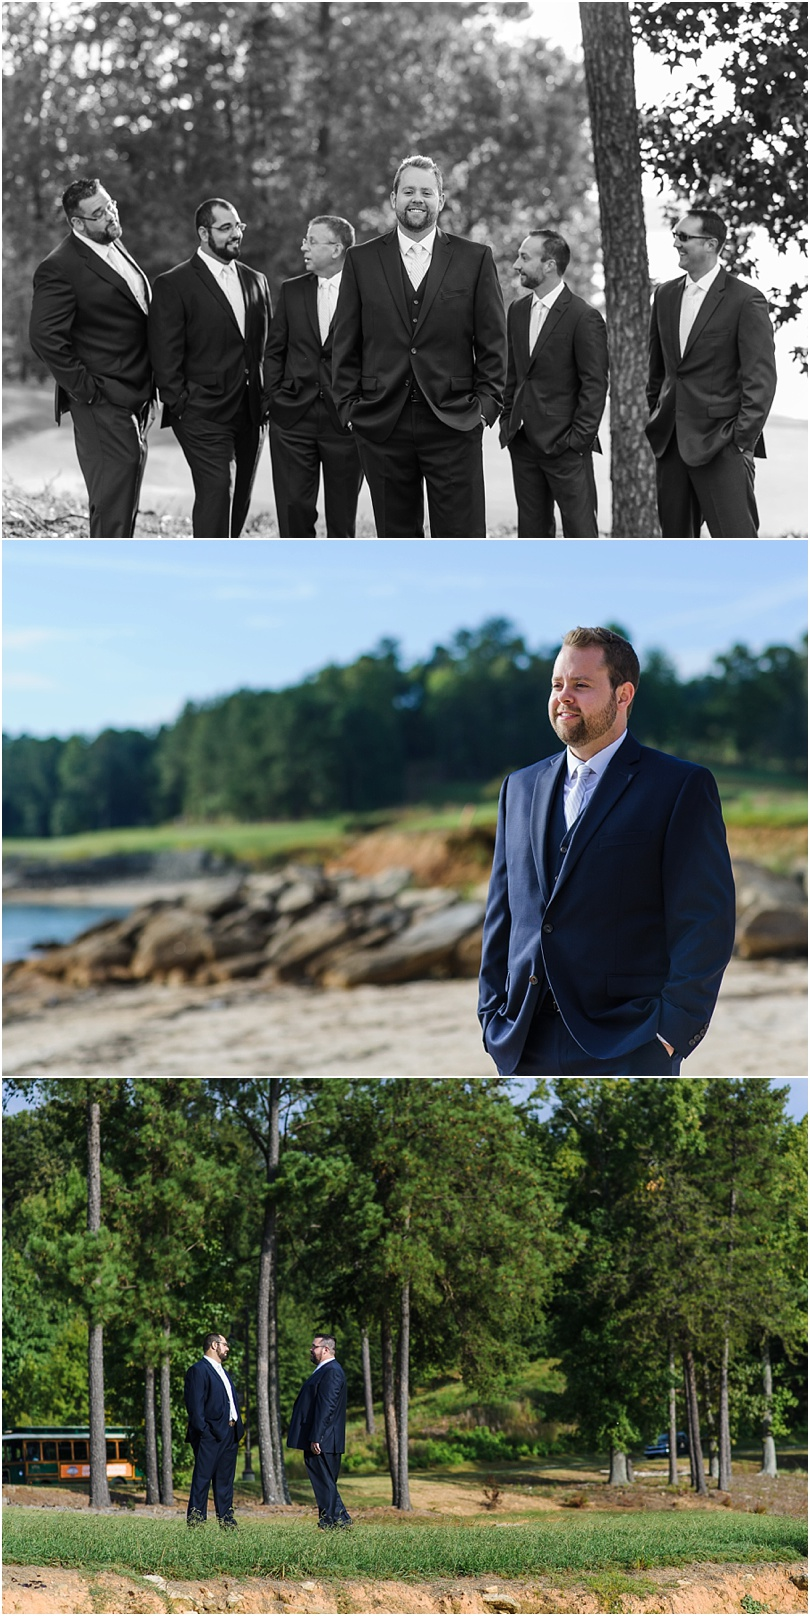 We made our way down to the beach for some portraits of the groom